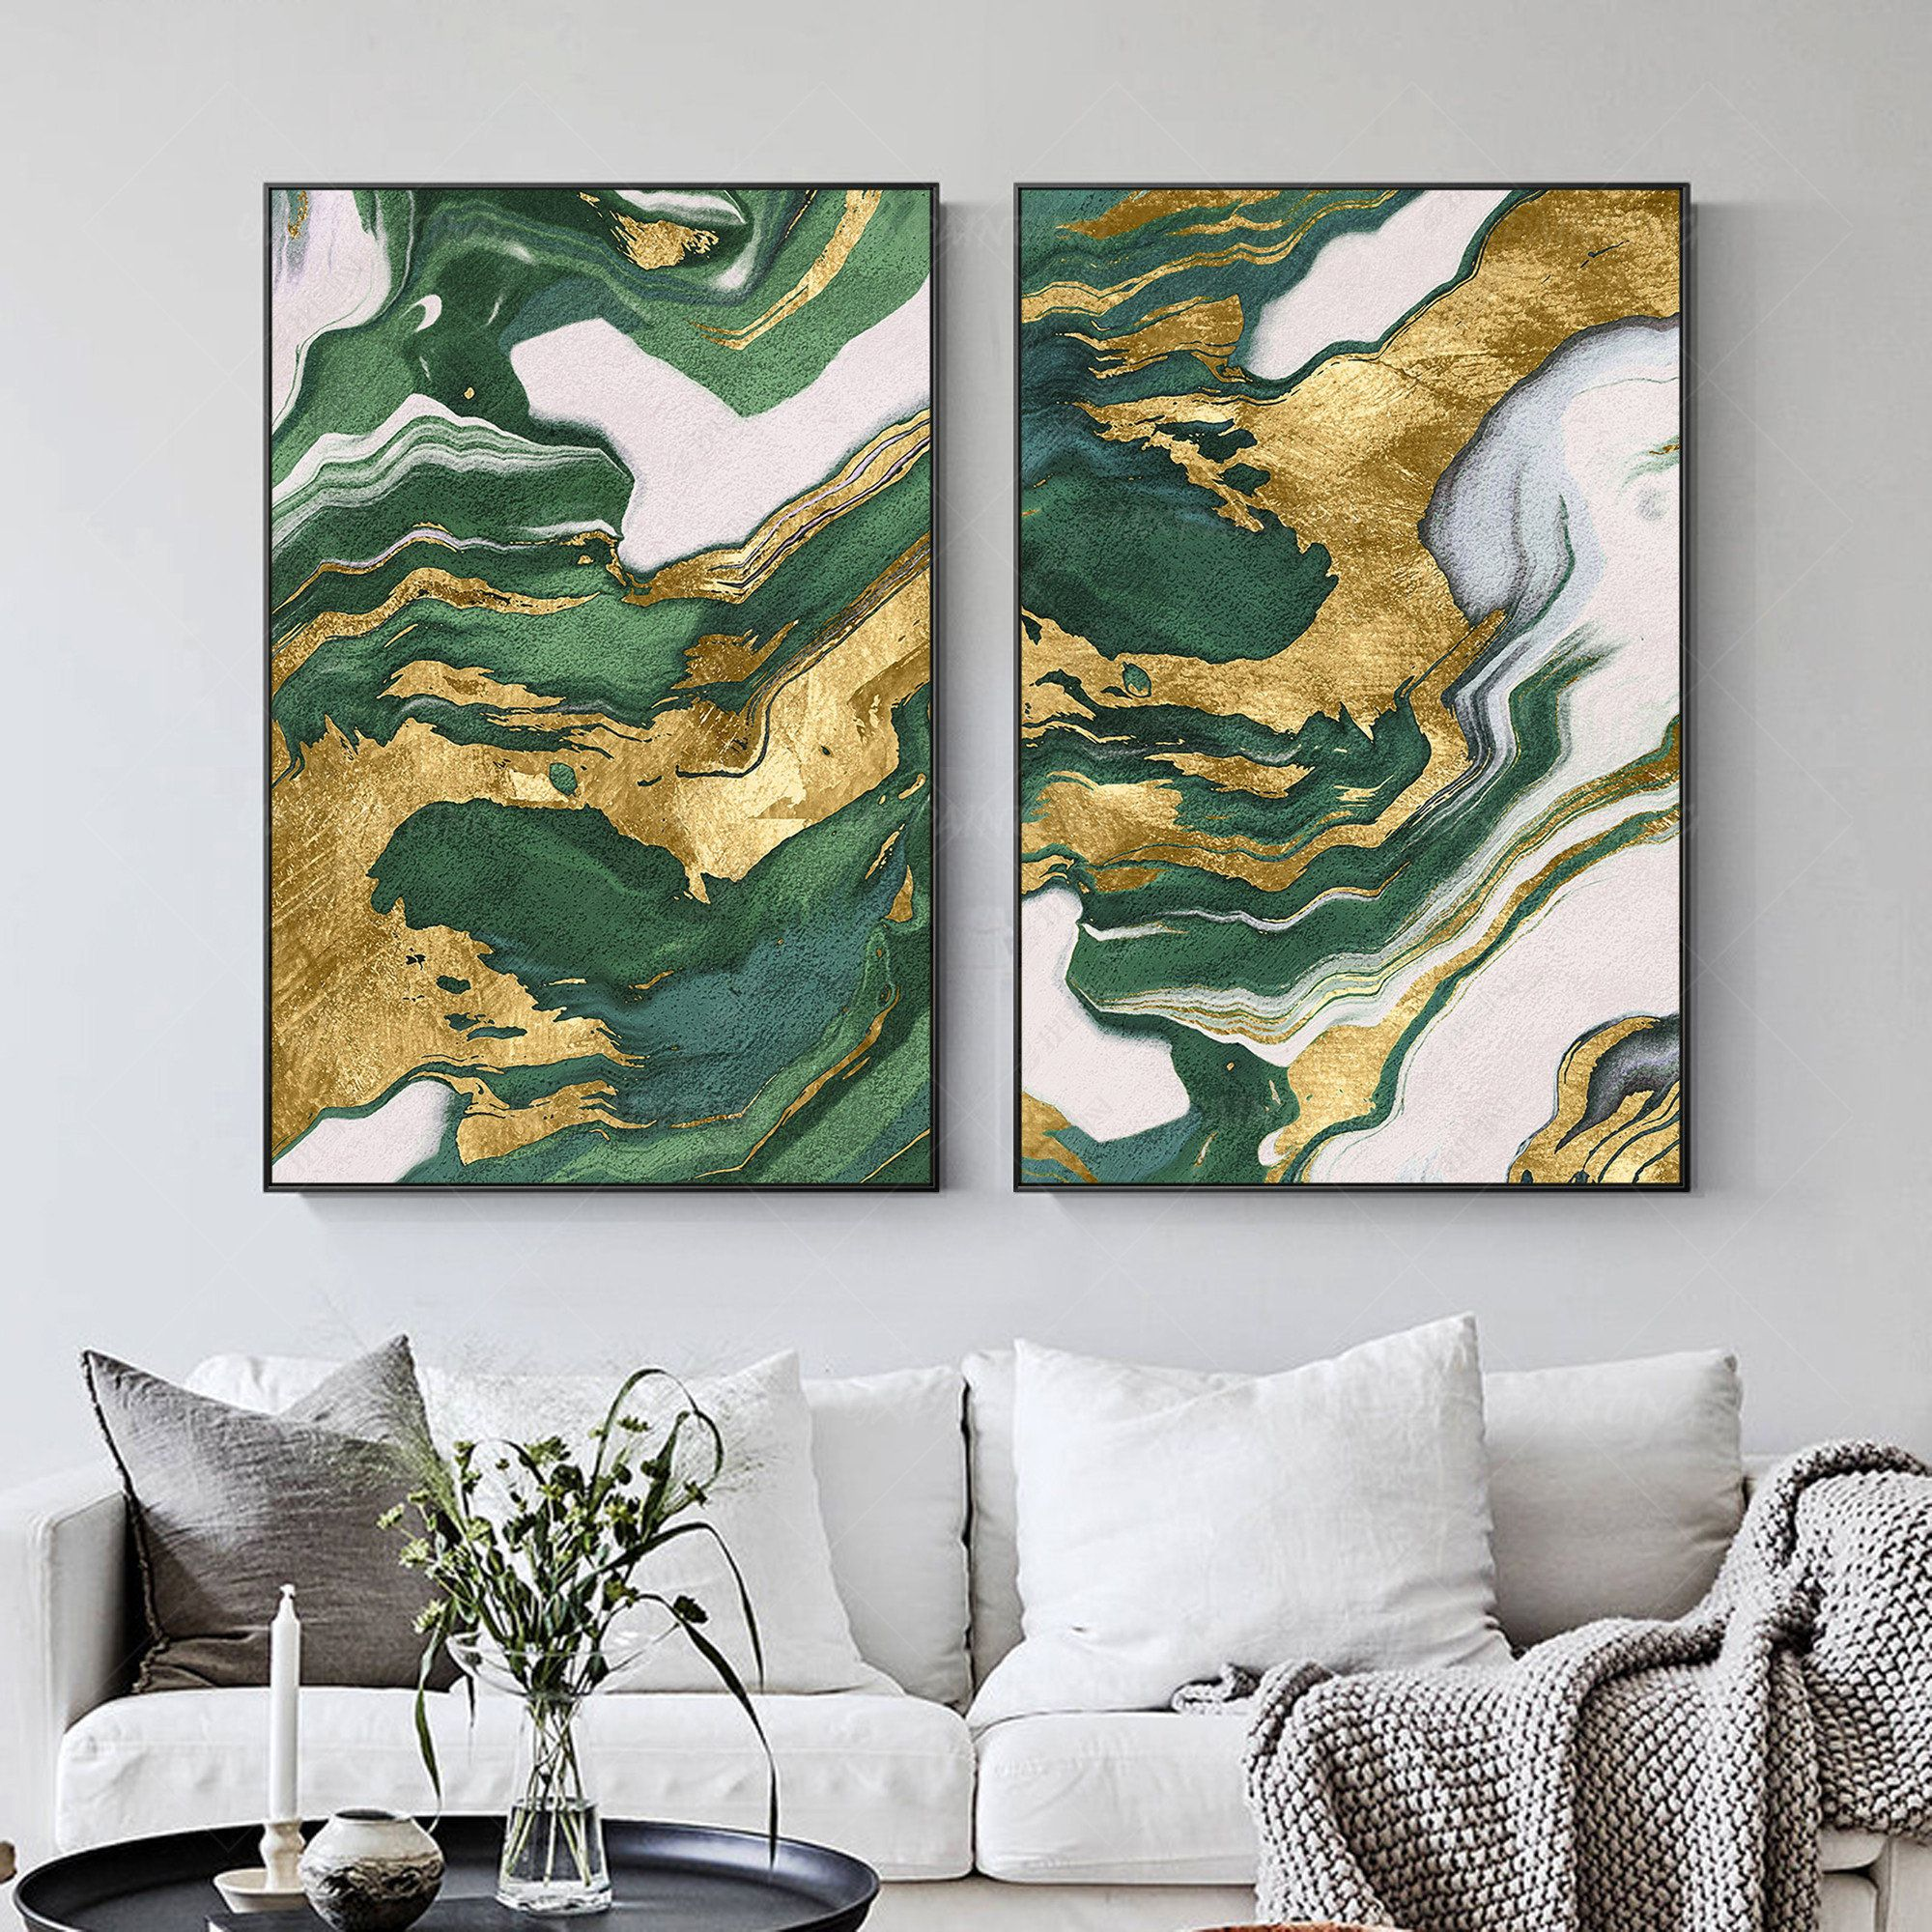 Gold Art 2 Pieces Wall Art Framed Painting Emerald Green Set Etsy In 2020 Painting Frames Abstract Painting Wall Art Gold Leaf #painting #frames #for #living #room